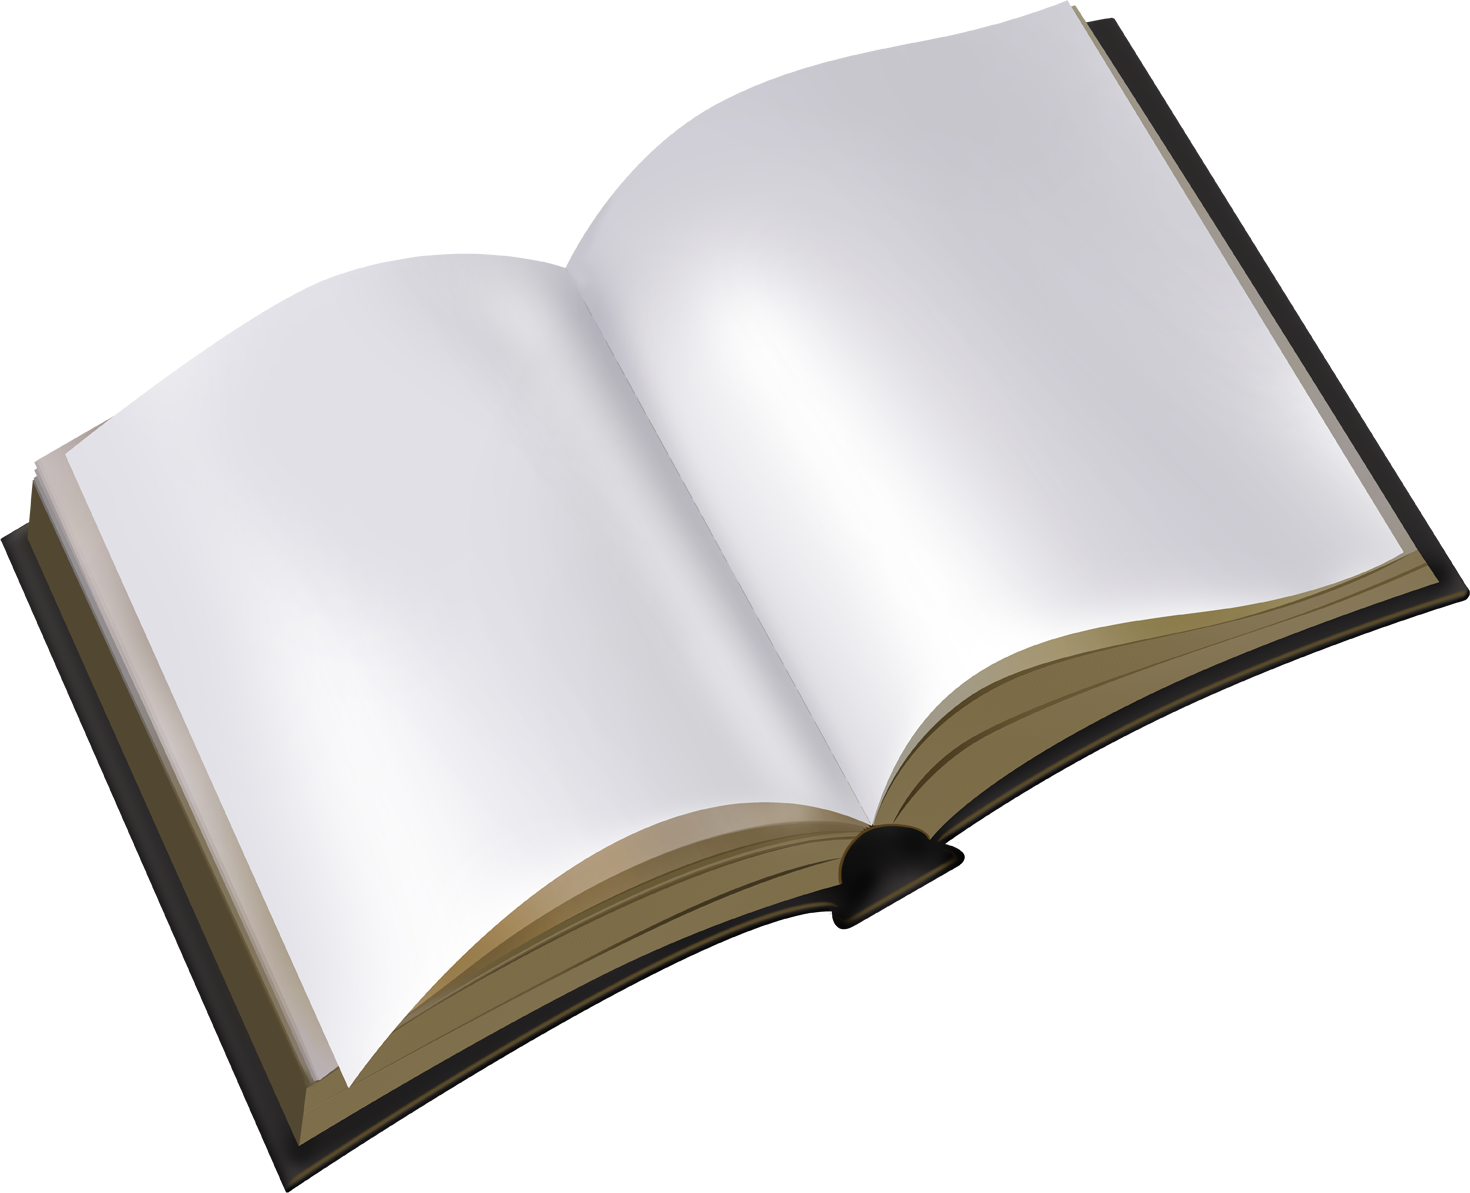 Book PNG - 24000